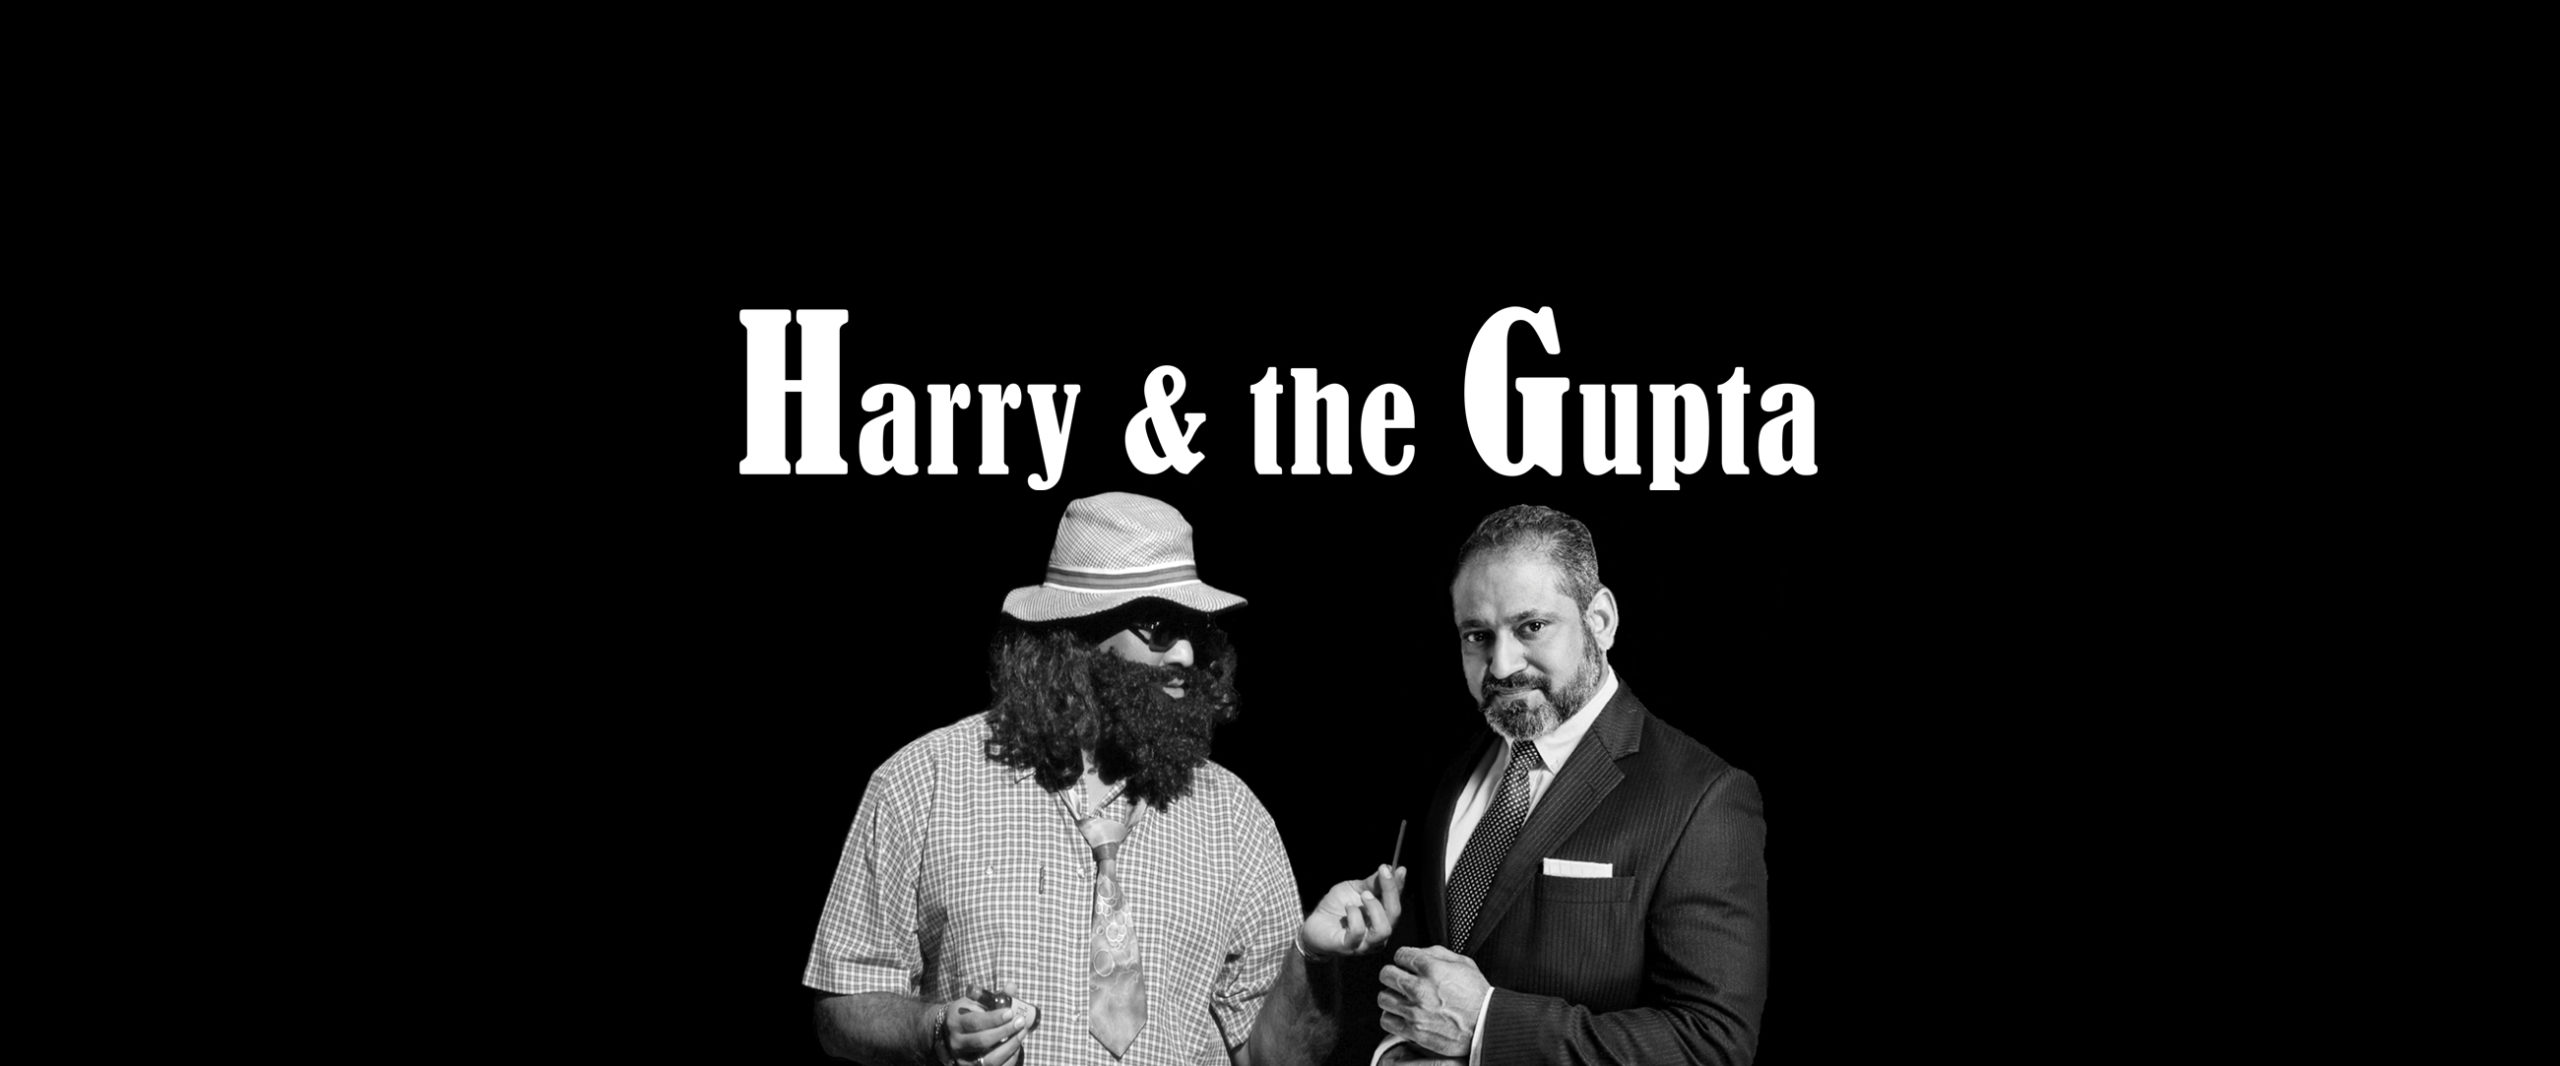 Harry & The Gupta Event banner